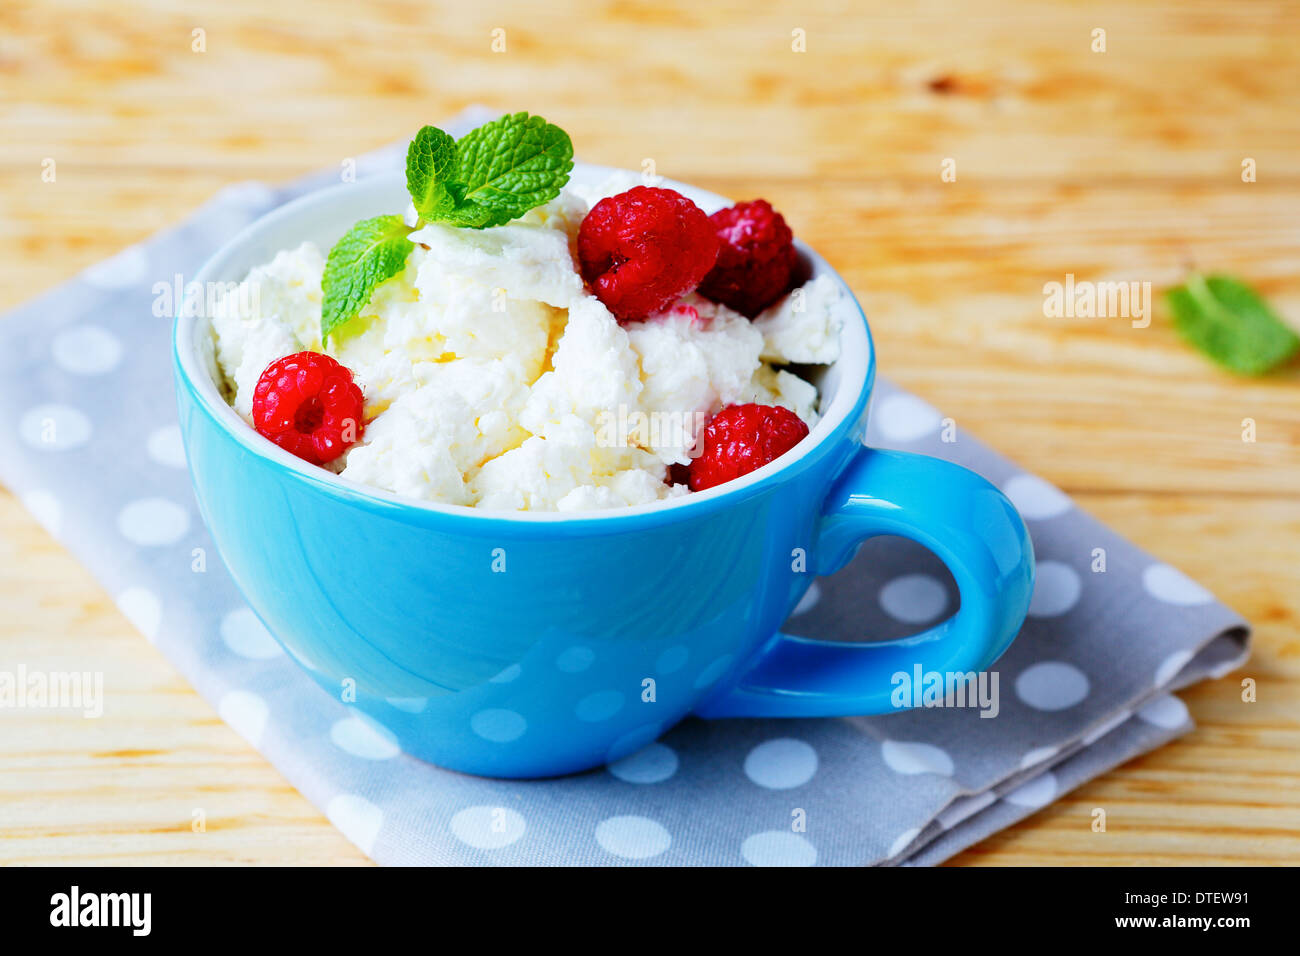 cottage cheese with fresh raspberries, food closeup - Stock Image